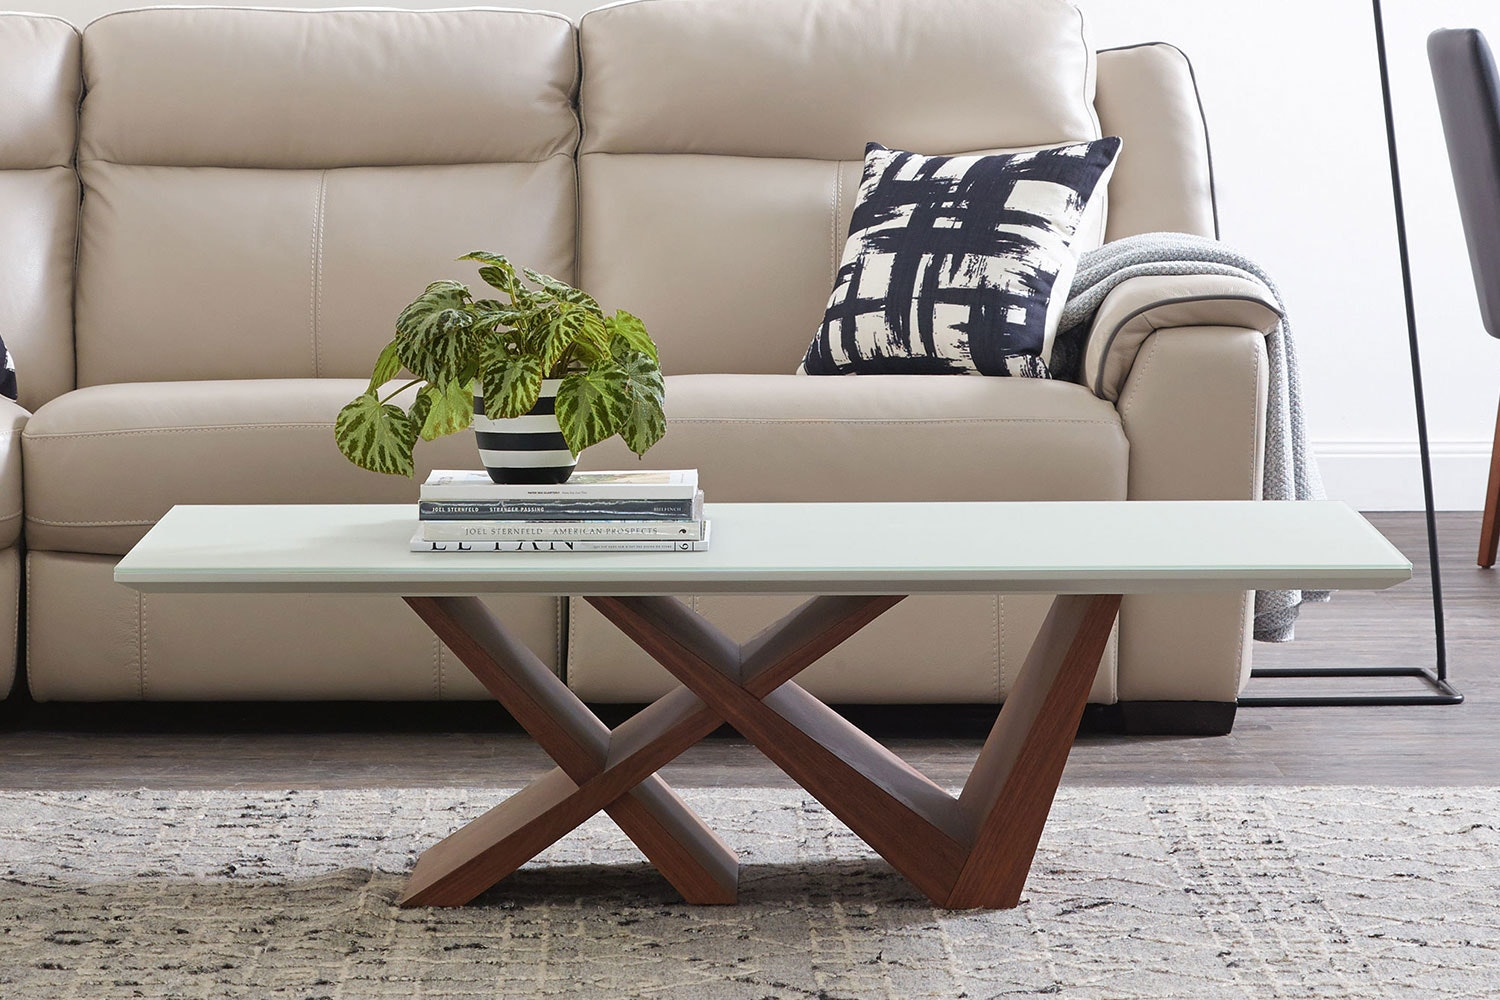 Moderna Coffee Table by Insato Furniture